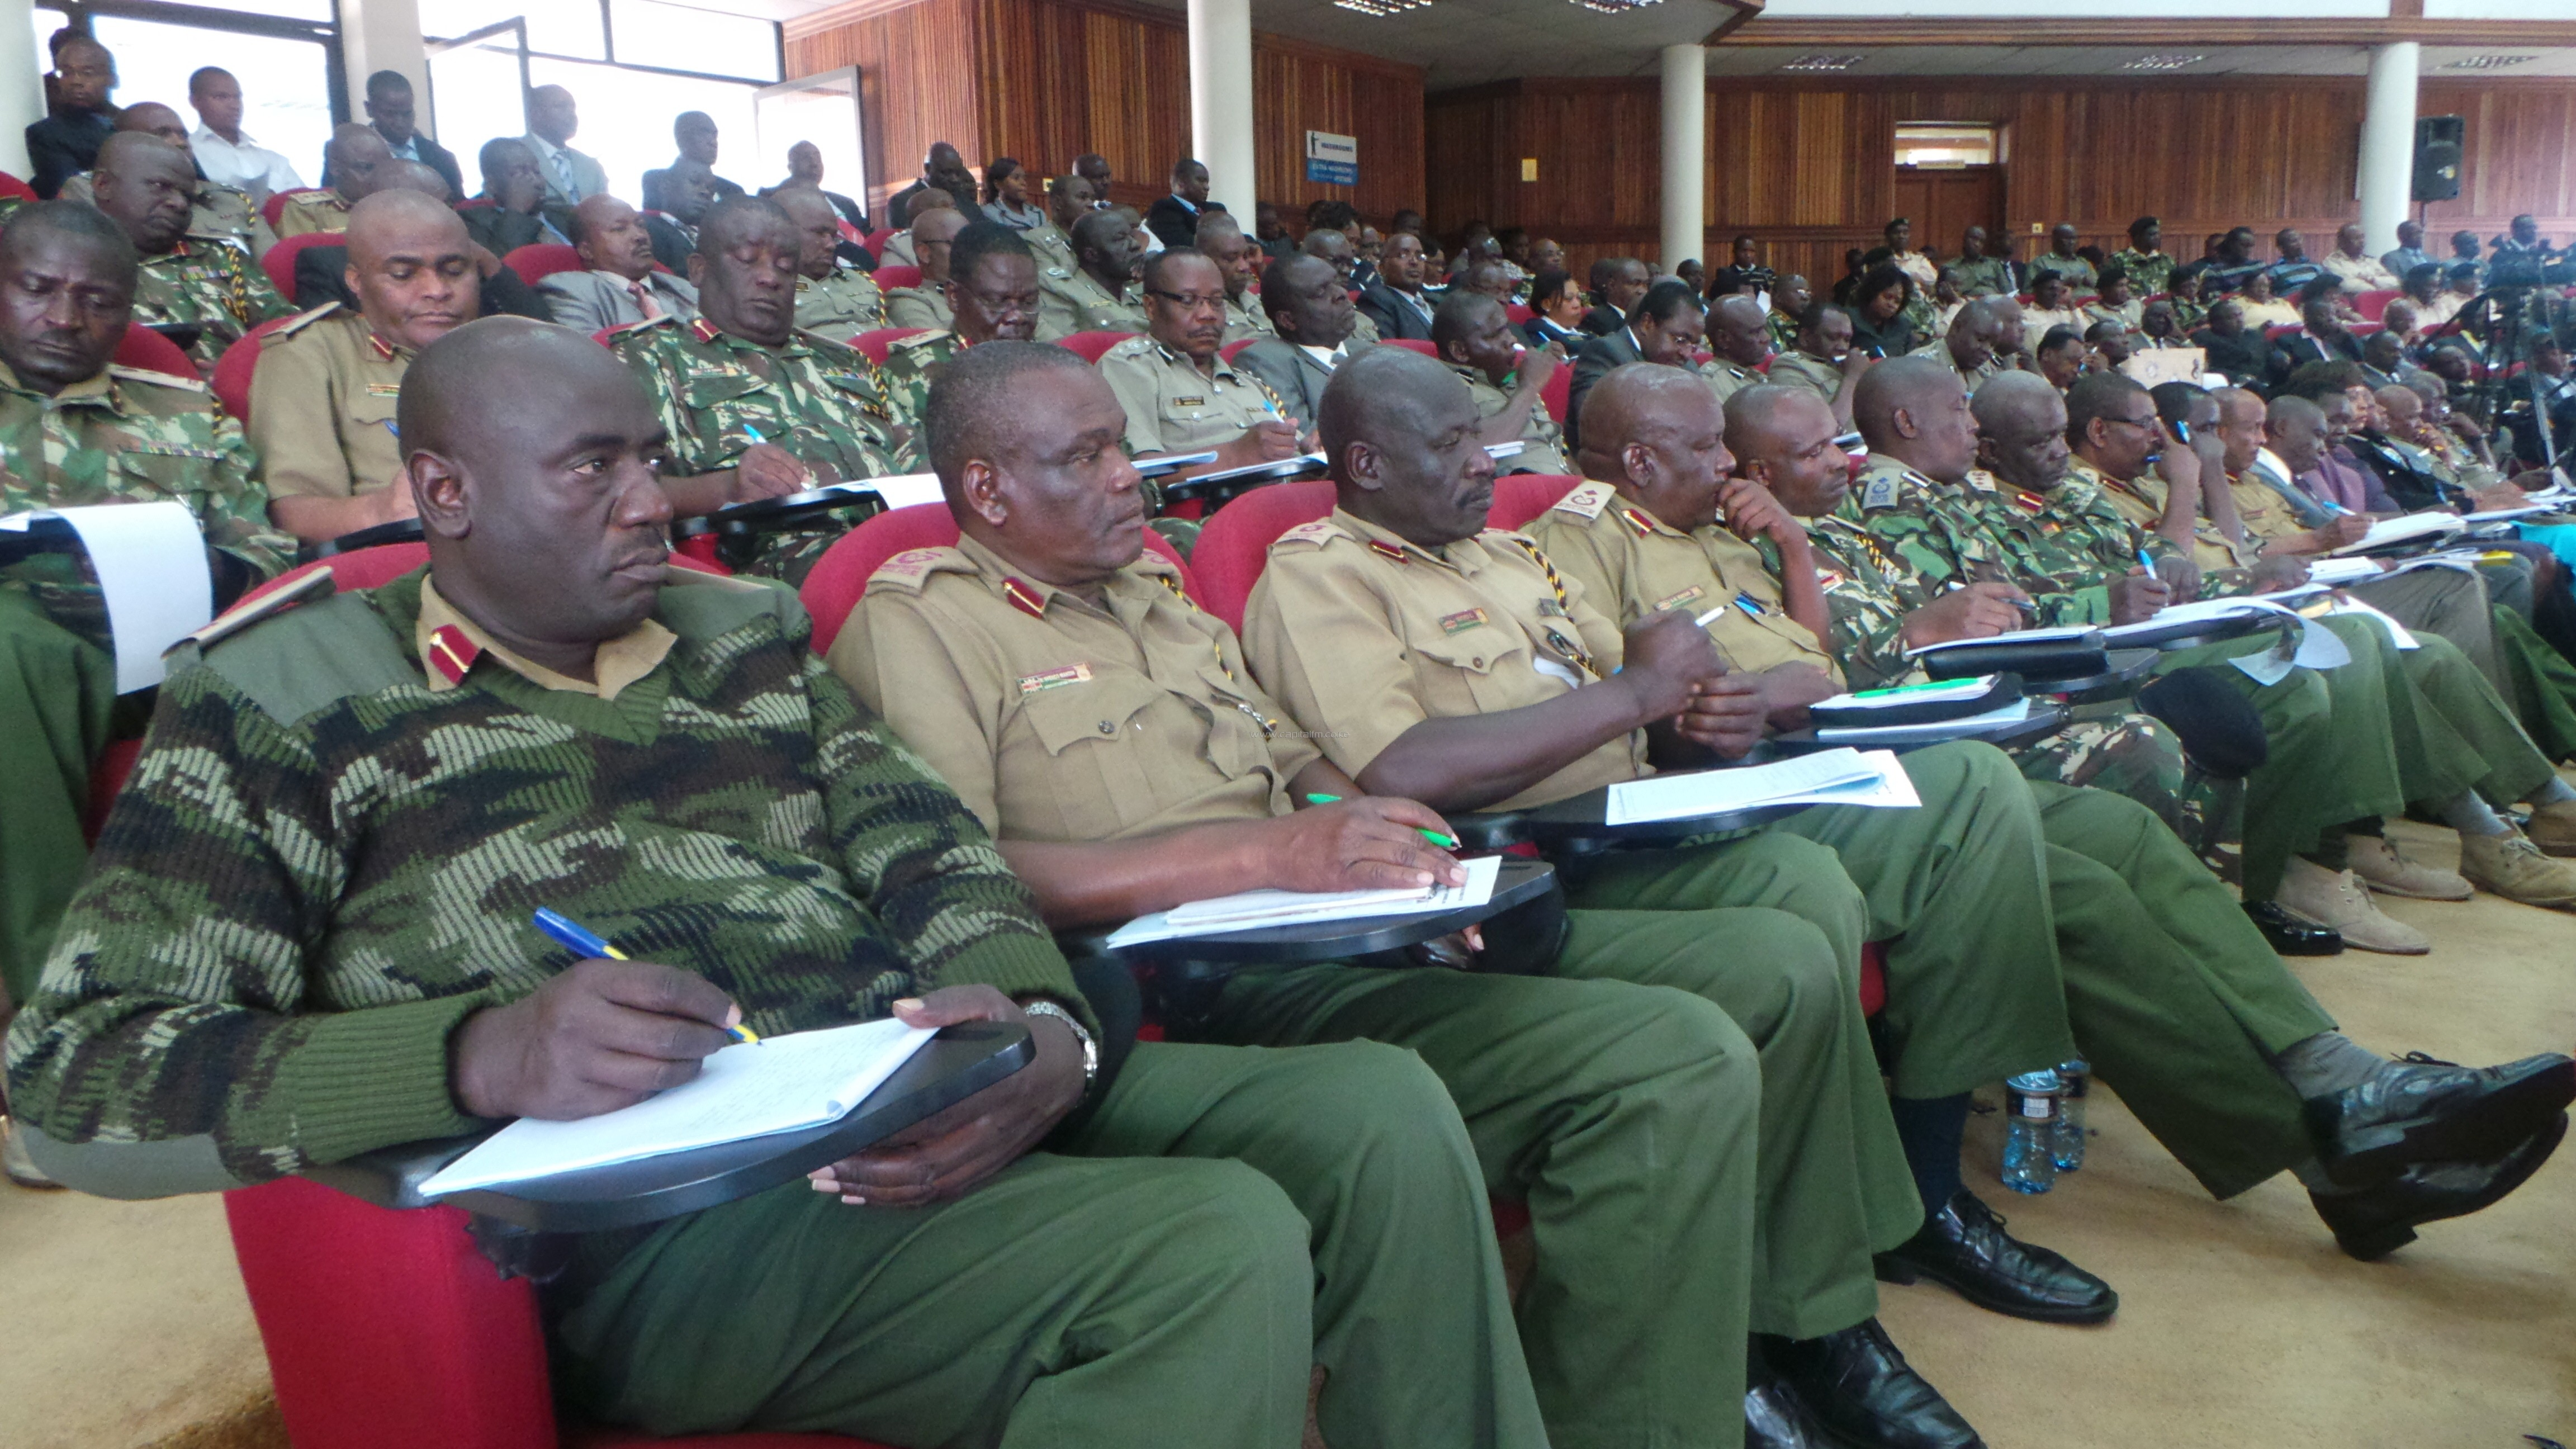 The 100 days Rapid Results Initiative forum was attended by all senior police offices in the country including the Inspector General of Police David Kimaiyo/MIKE KARIUKI